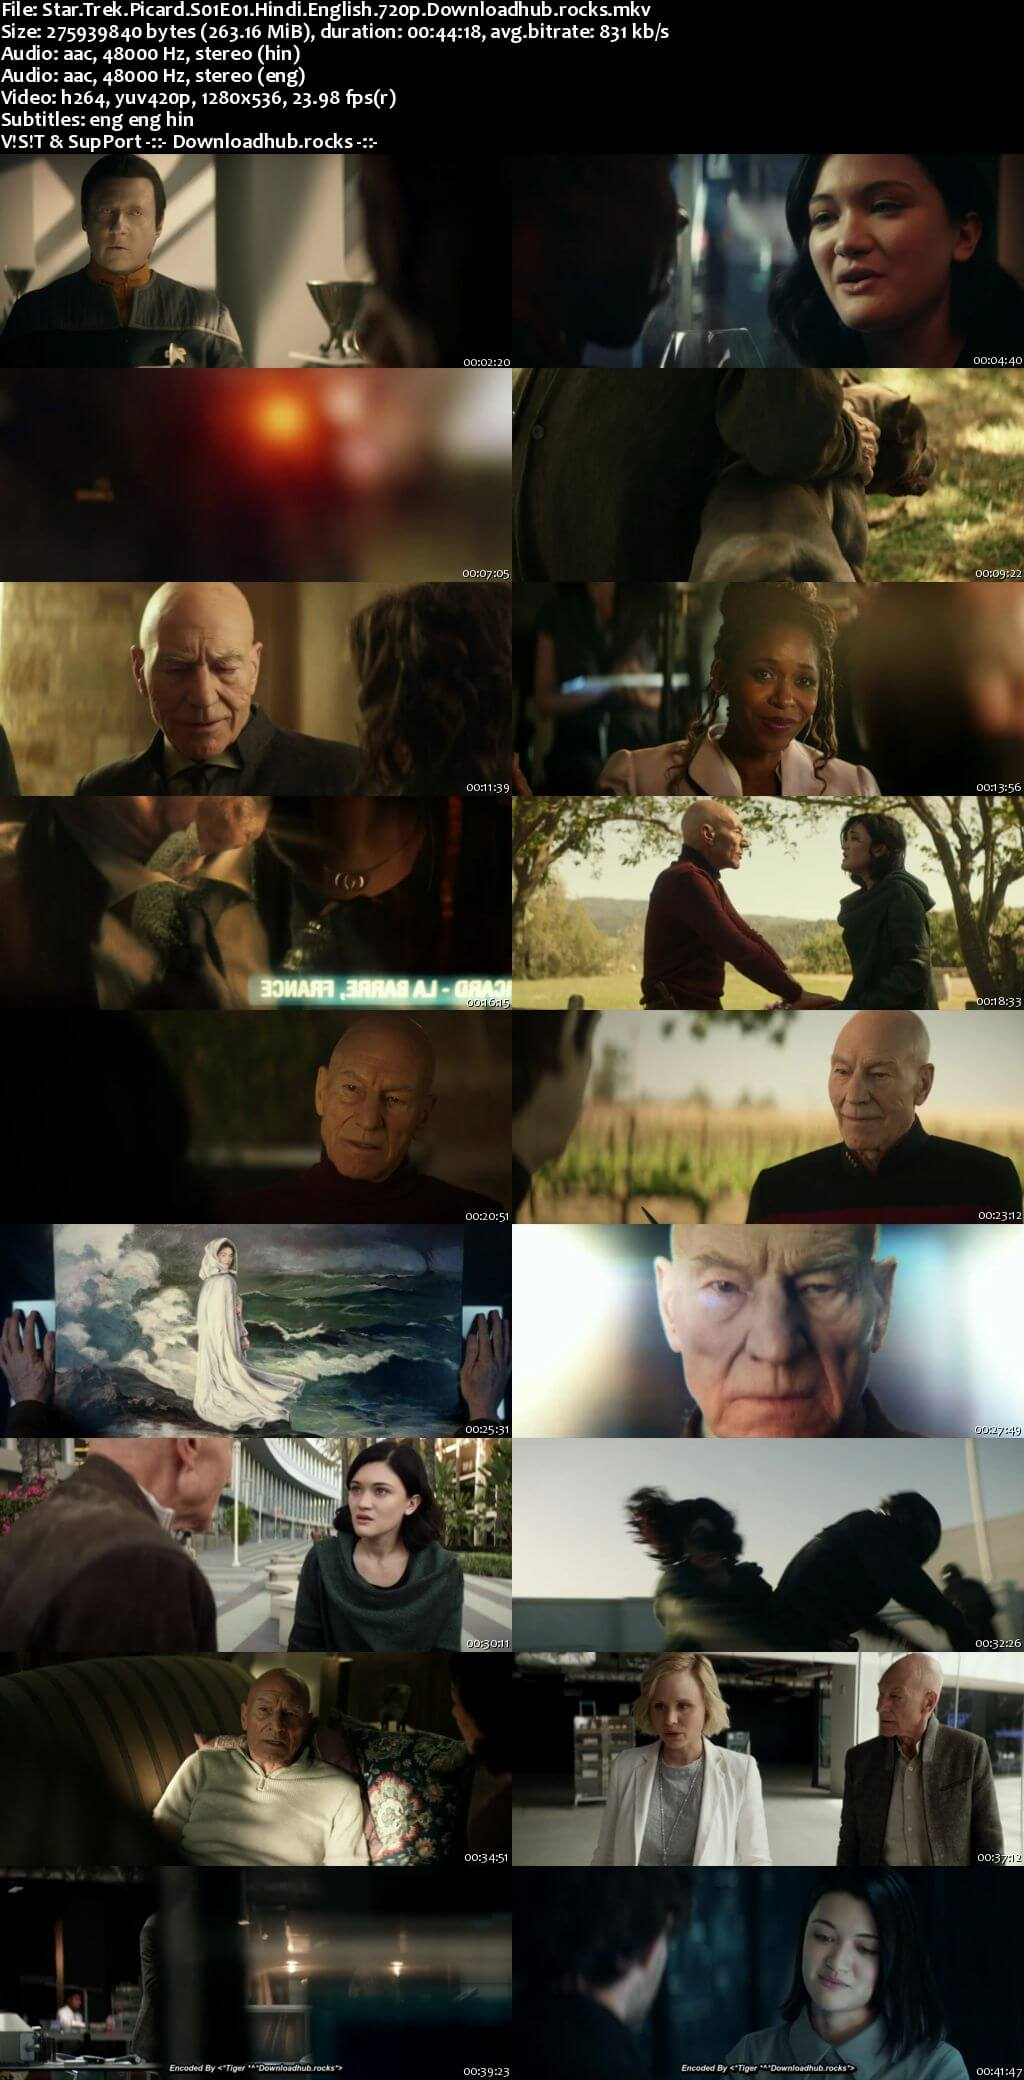 Star Trek Picard S01 Complete Hindi Dual Audio 720p Web-DL MSubs